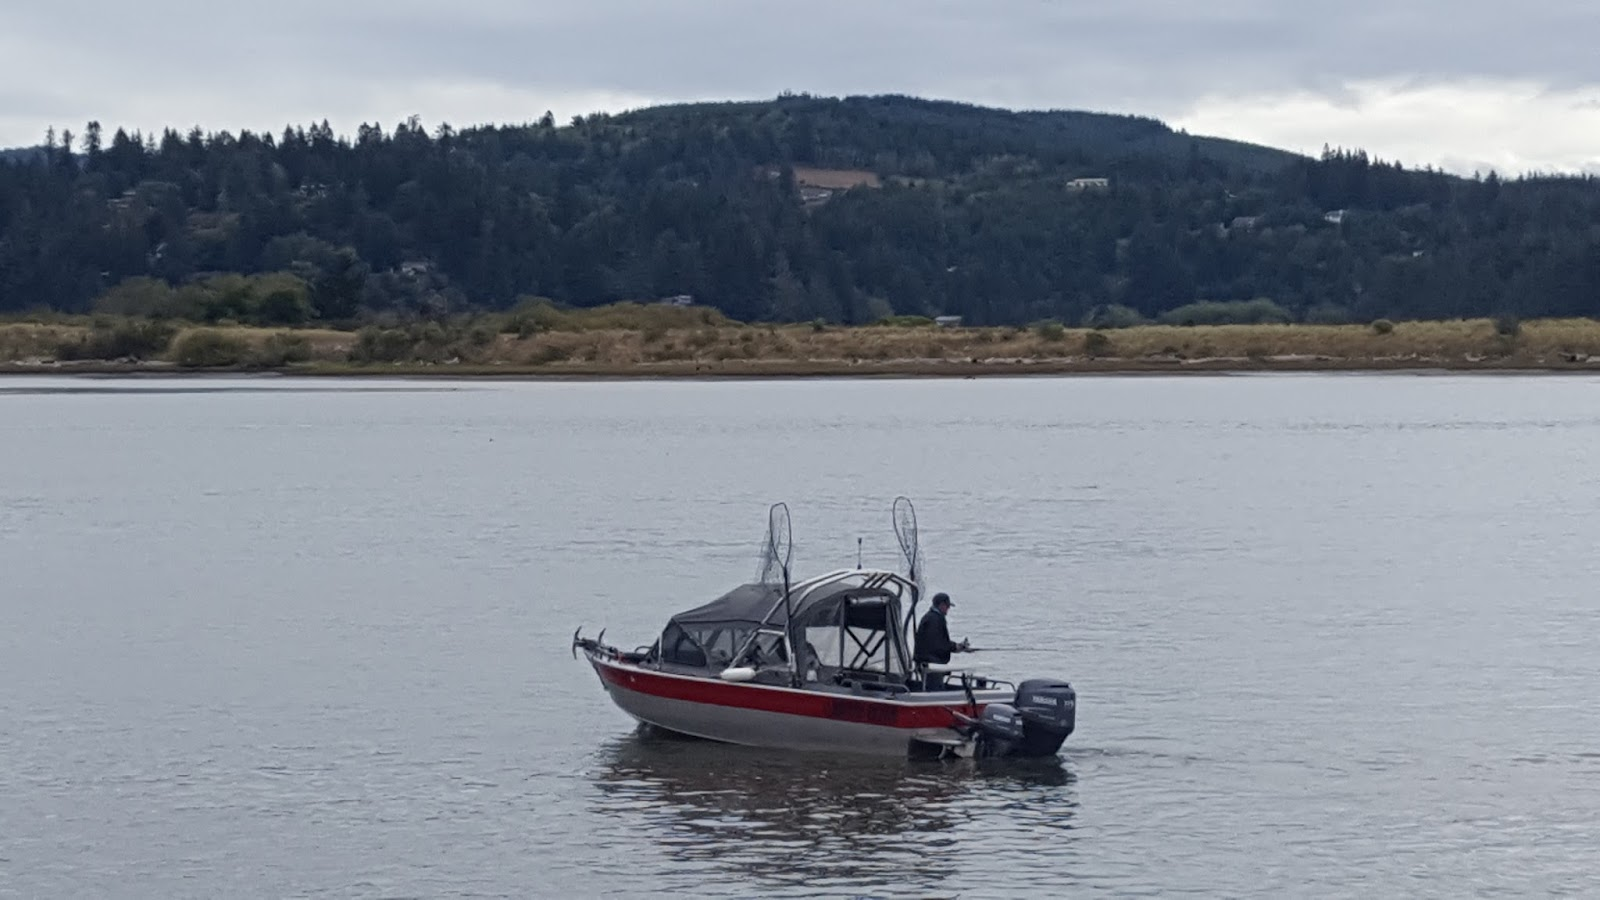 Eas on down the road coos bay cape arago shore acres for Coos bay fishing